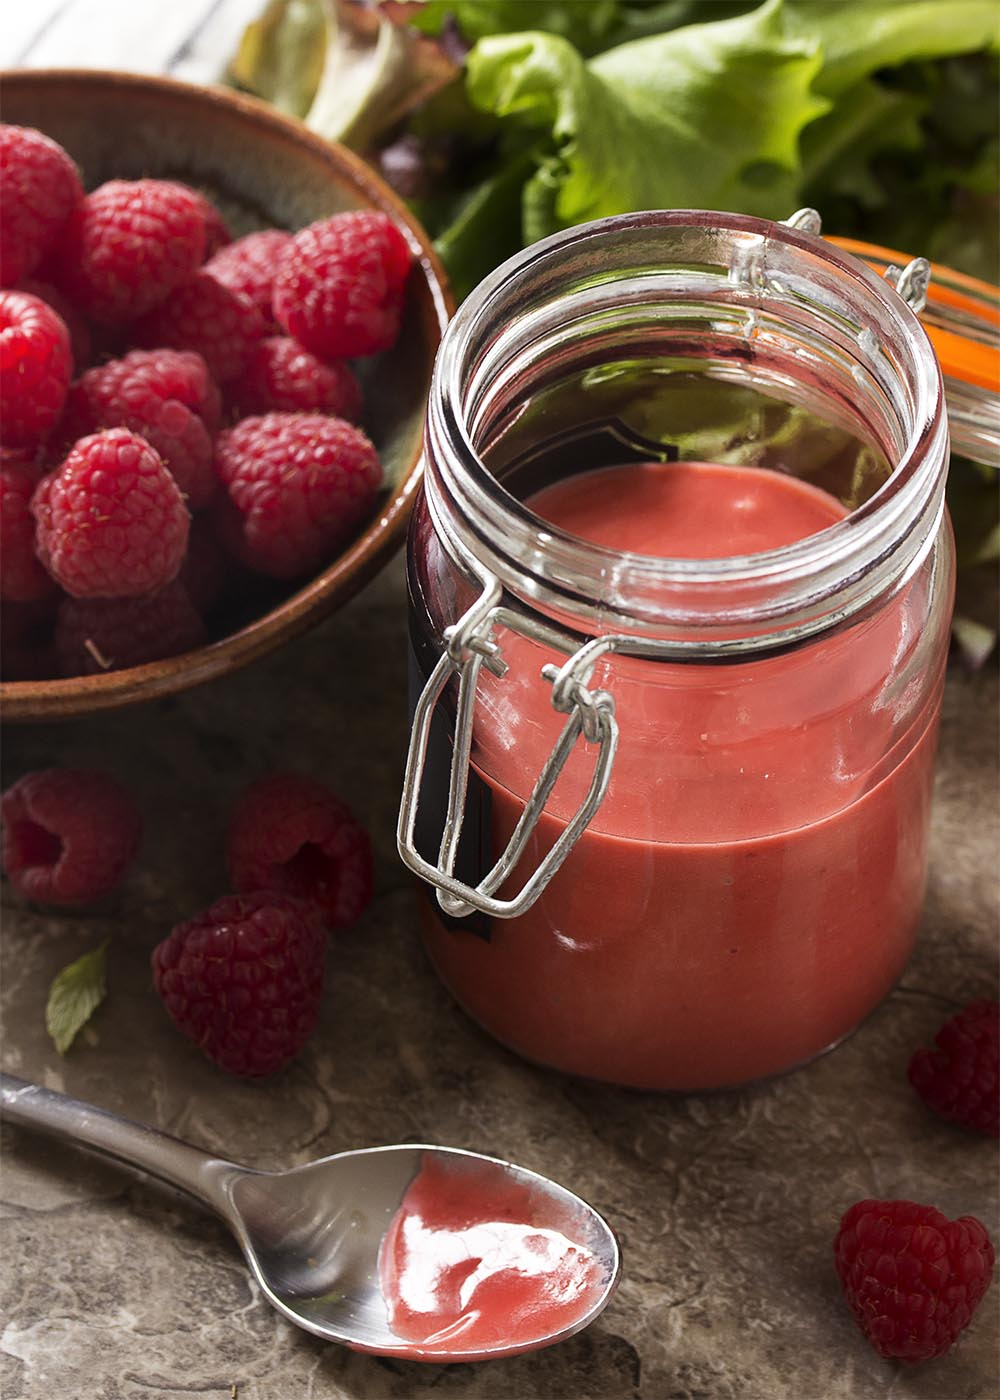 A glass jar of raspberry vinaigrette with a bowl of fresh raspberries and spoonful of the dressing.